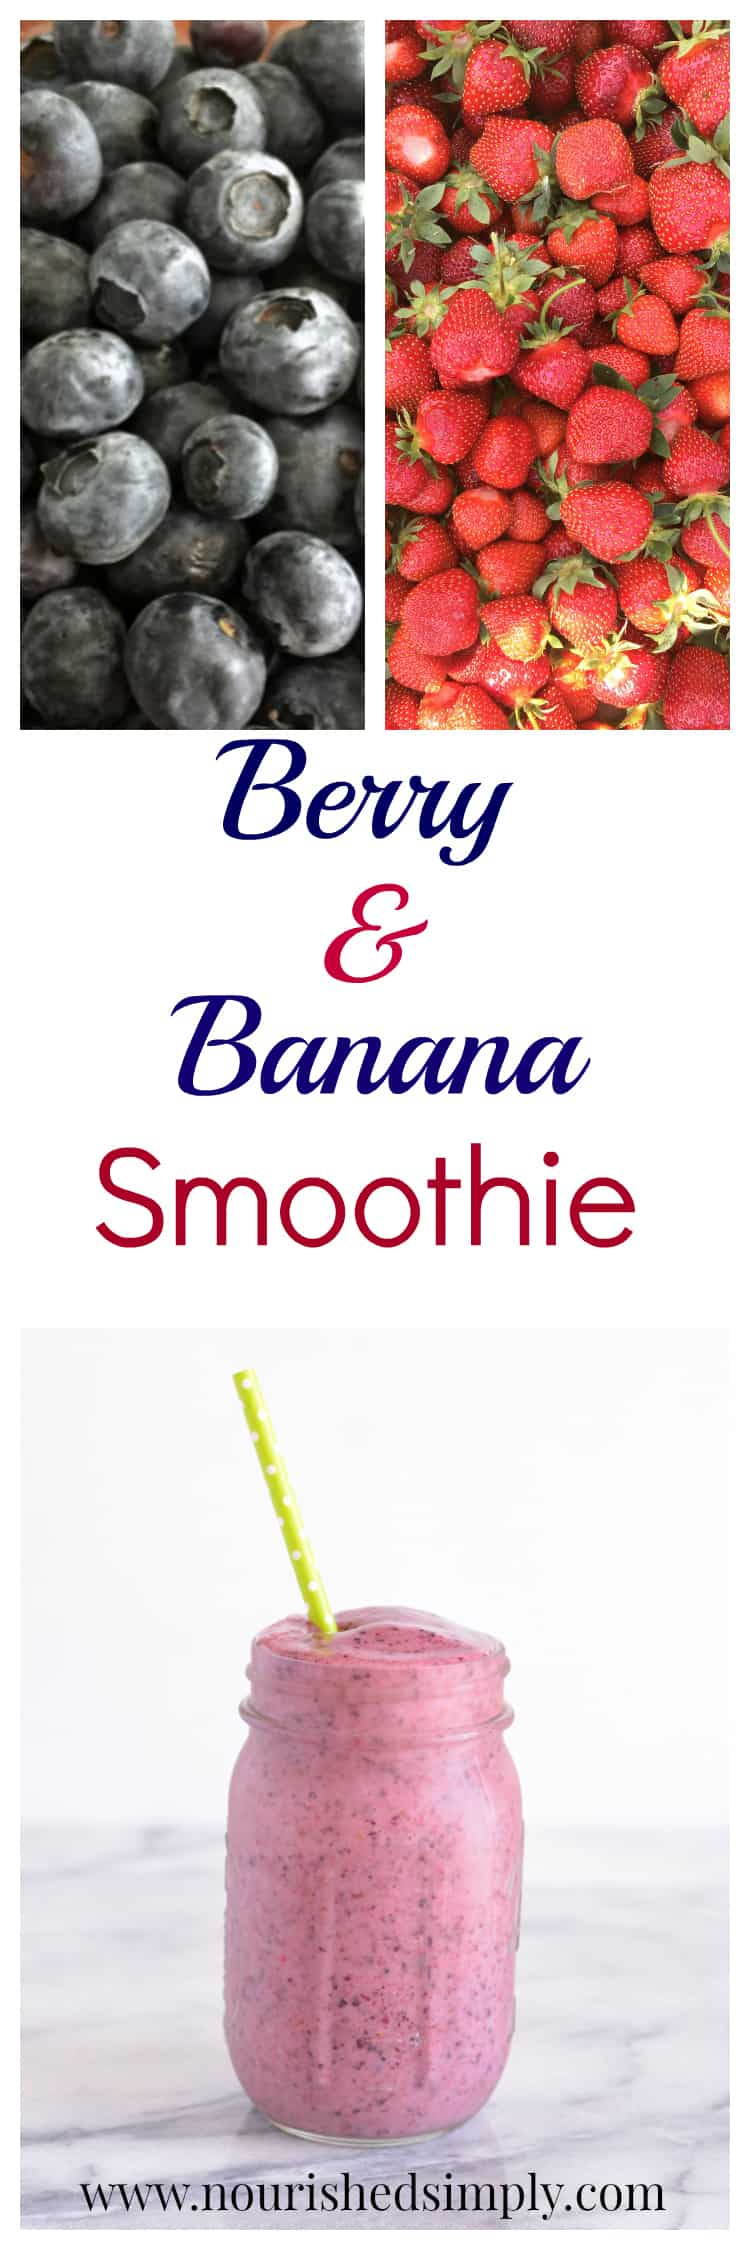 Berry Banana Smoothie made with real fruit and no added sugar is a vitamin filled drink to fill your belly.